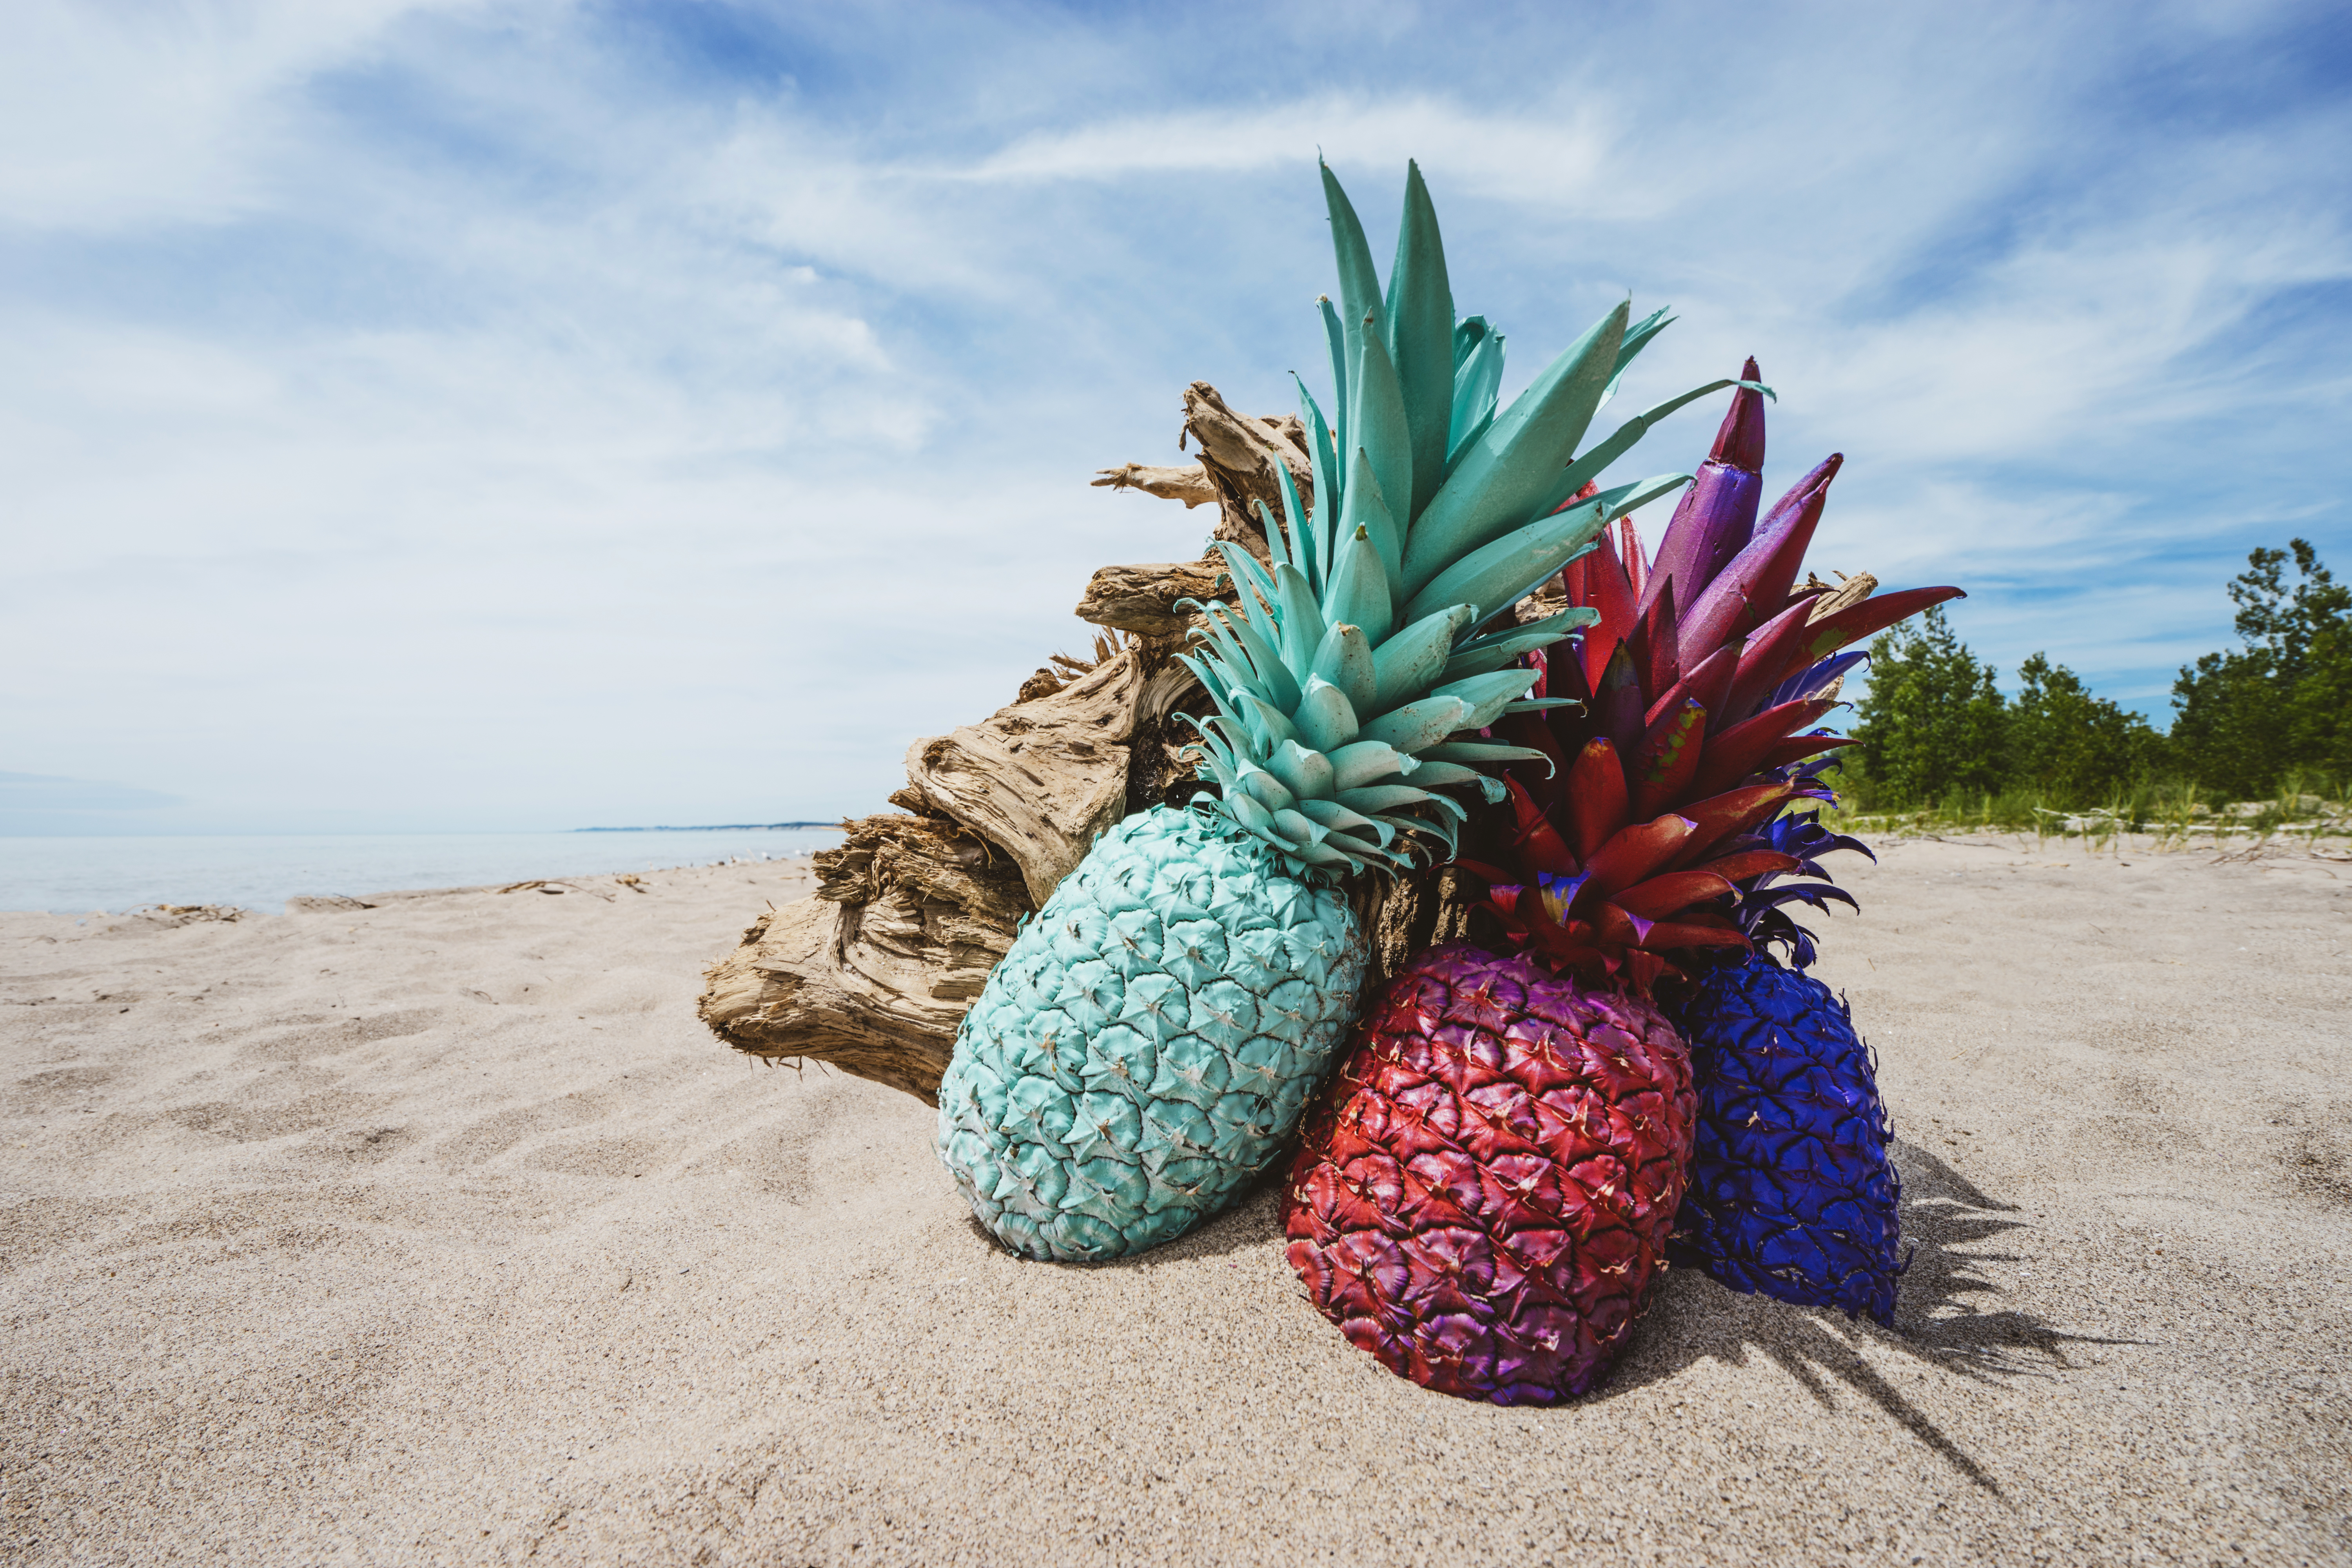 Cute Camera Wallpaper Three Assorted Color Pineapples On Sand 183 Free Stock Photo